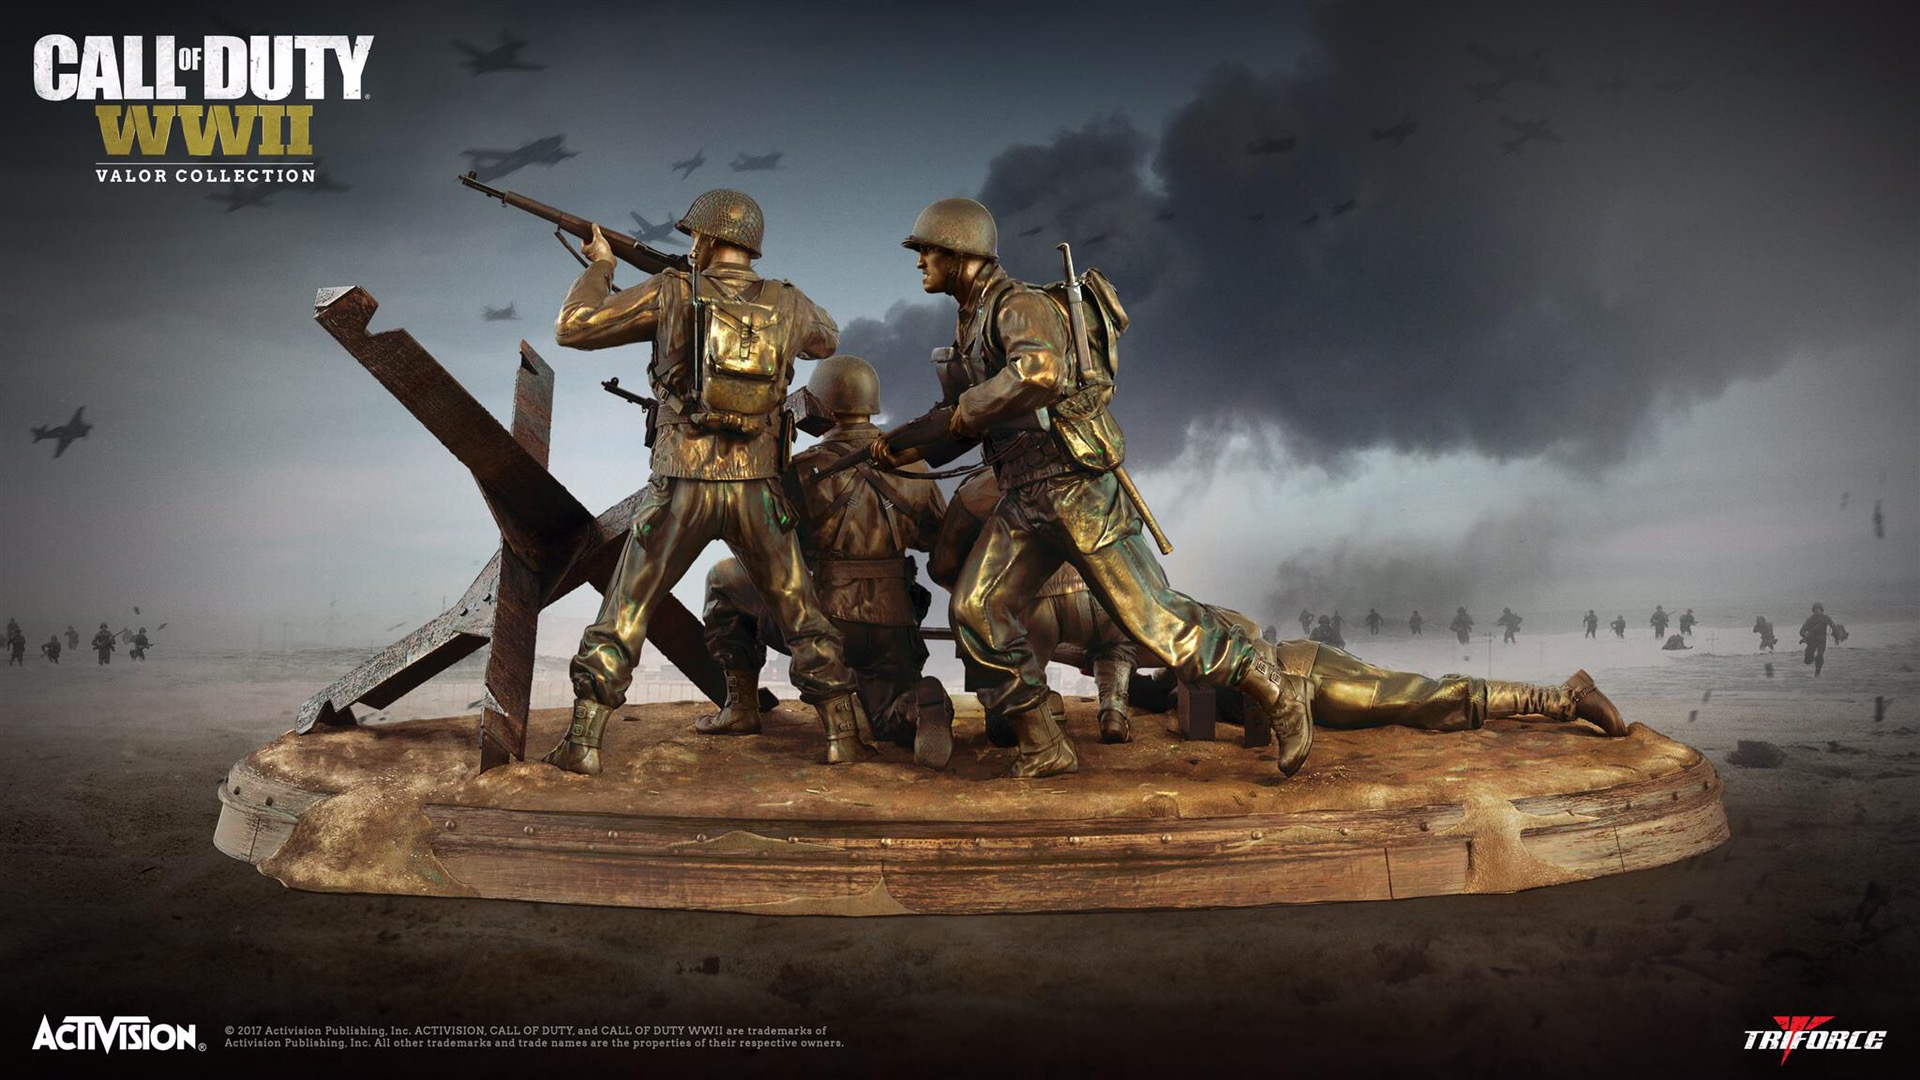 Call_of_duty_wii_figuere.jpg